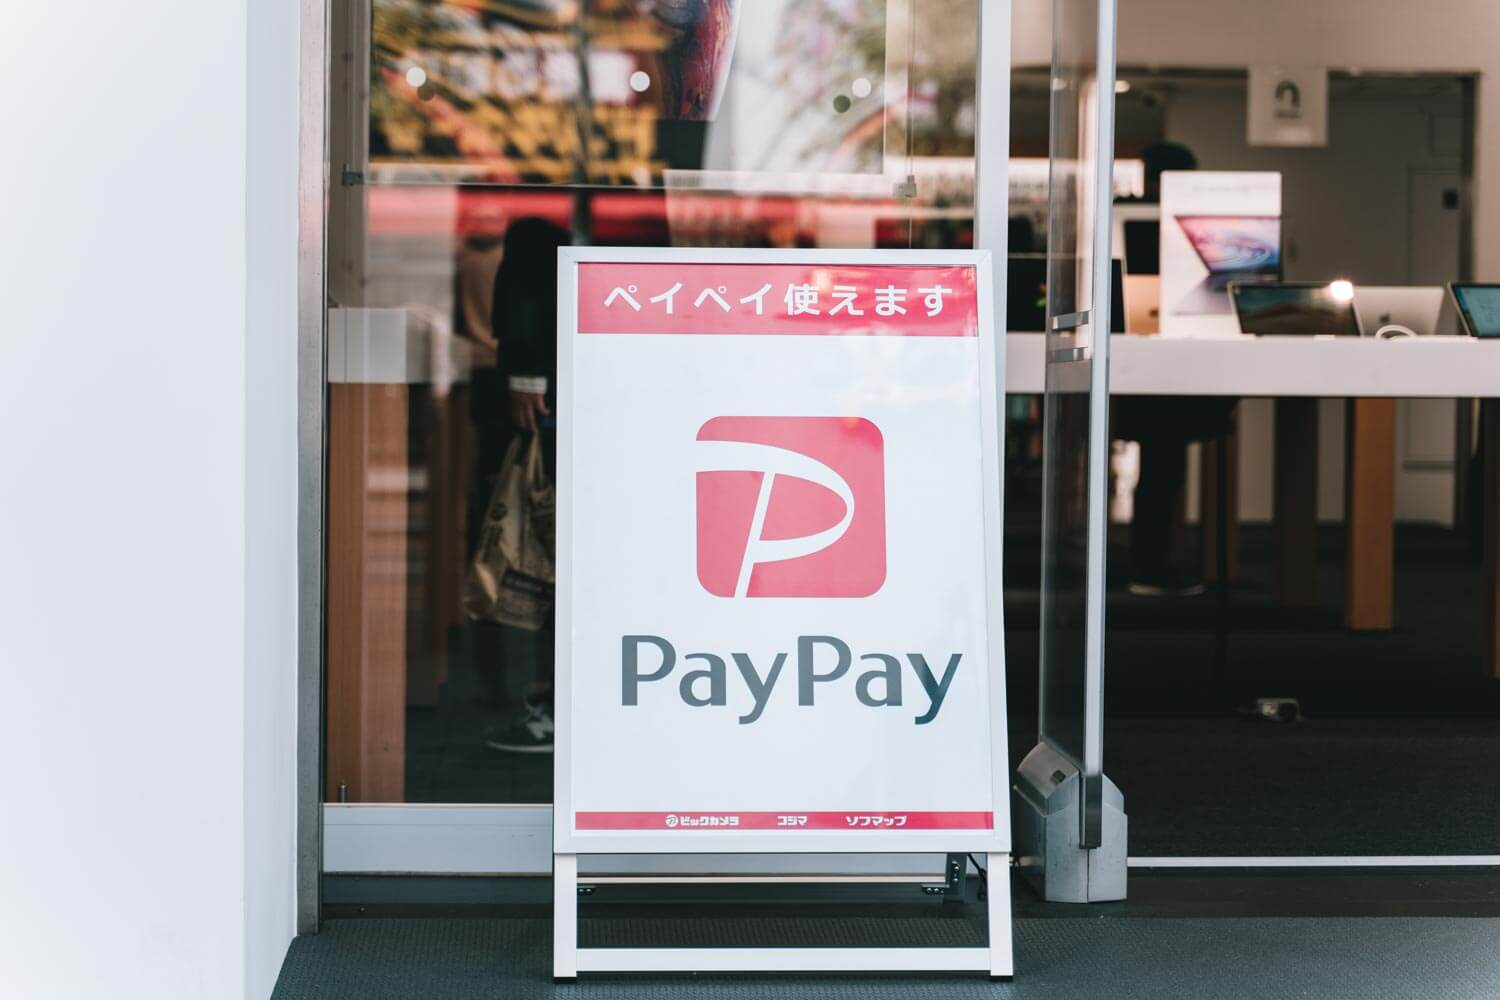 PayPayの看板